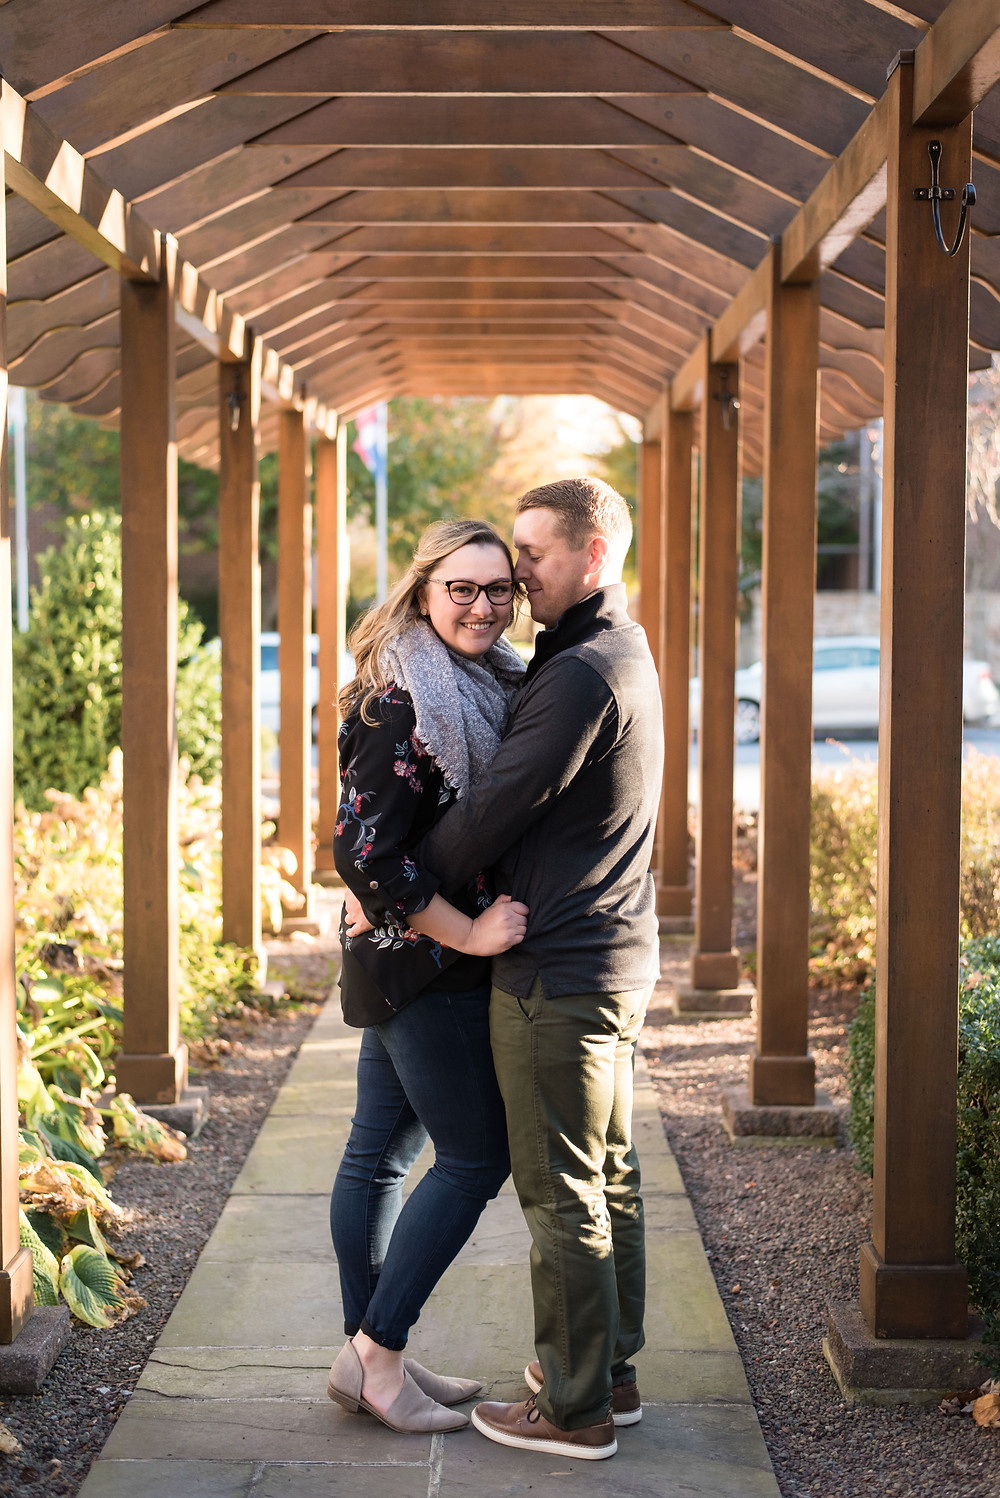 Lebanon Valley College Alumni return for fall engagement photos with Shannon Ritter Photography philadelphia wedding